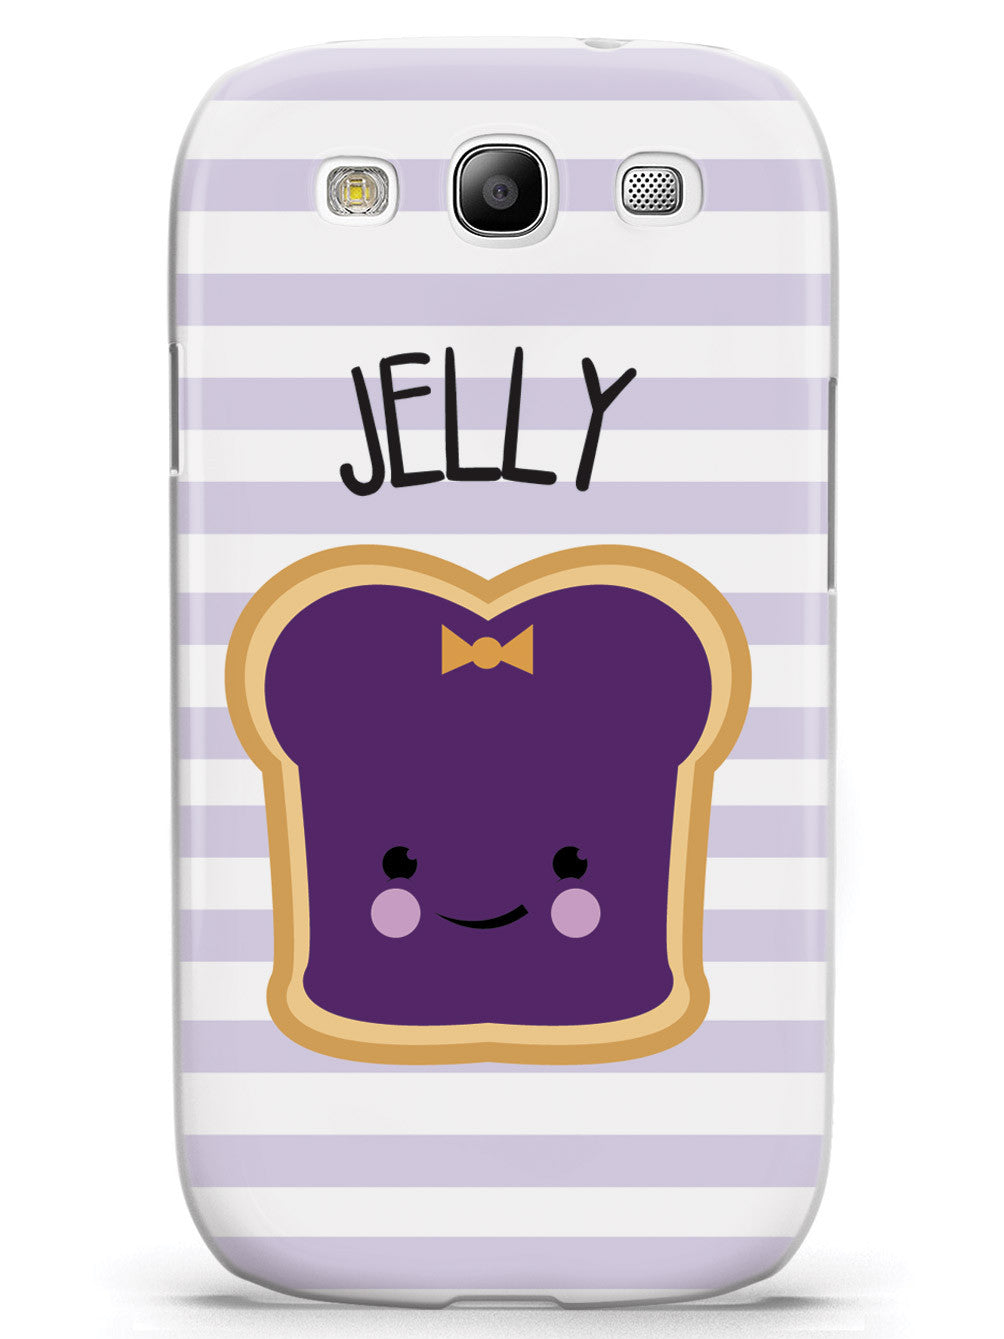 Peanut Butter & Jelly - Jelly Case